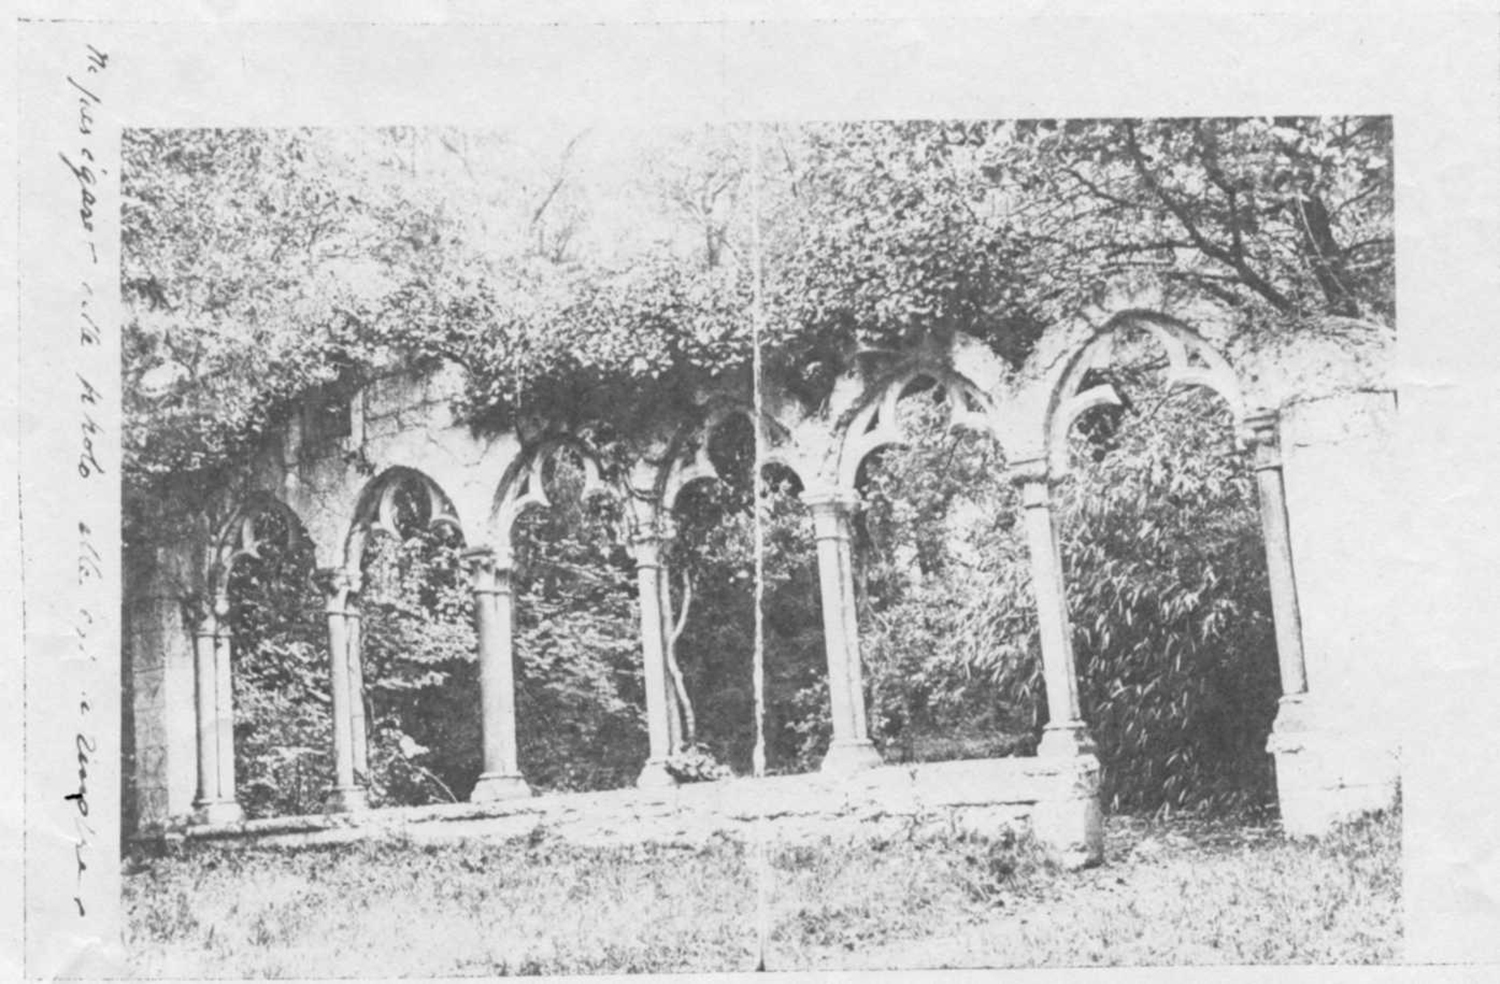 Figure 12: Front and back of photograph in Glencairn Museum Archives sent in March 1922 to Raymond Pitcairn from the dealer Joseph Brummer. The arches, from a fourteenth-century cloister, were later sold to John Hays Hammond, Jr. (See Figure 13.)